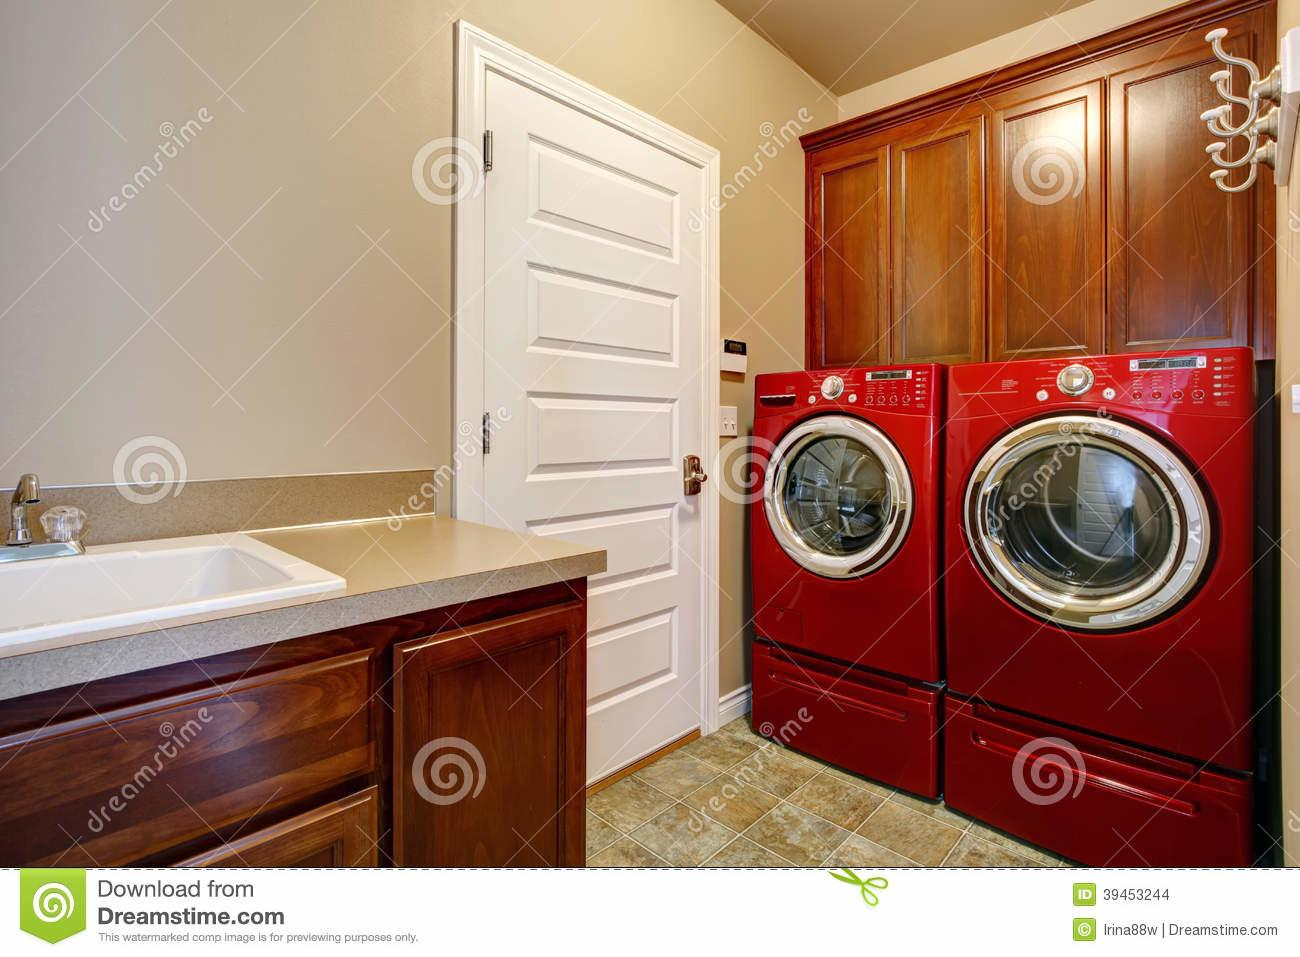 Laundry Room Modern Red Appliances Stock